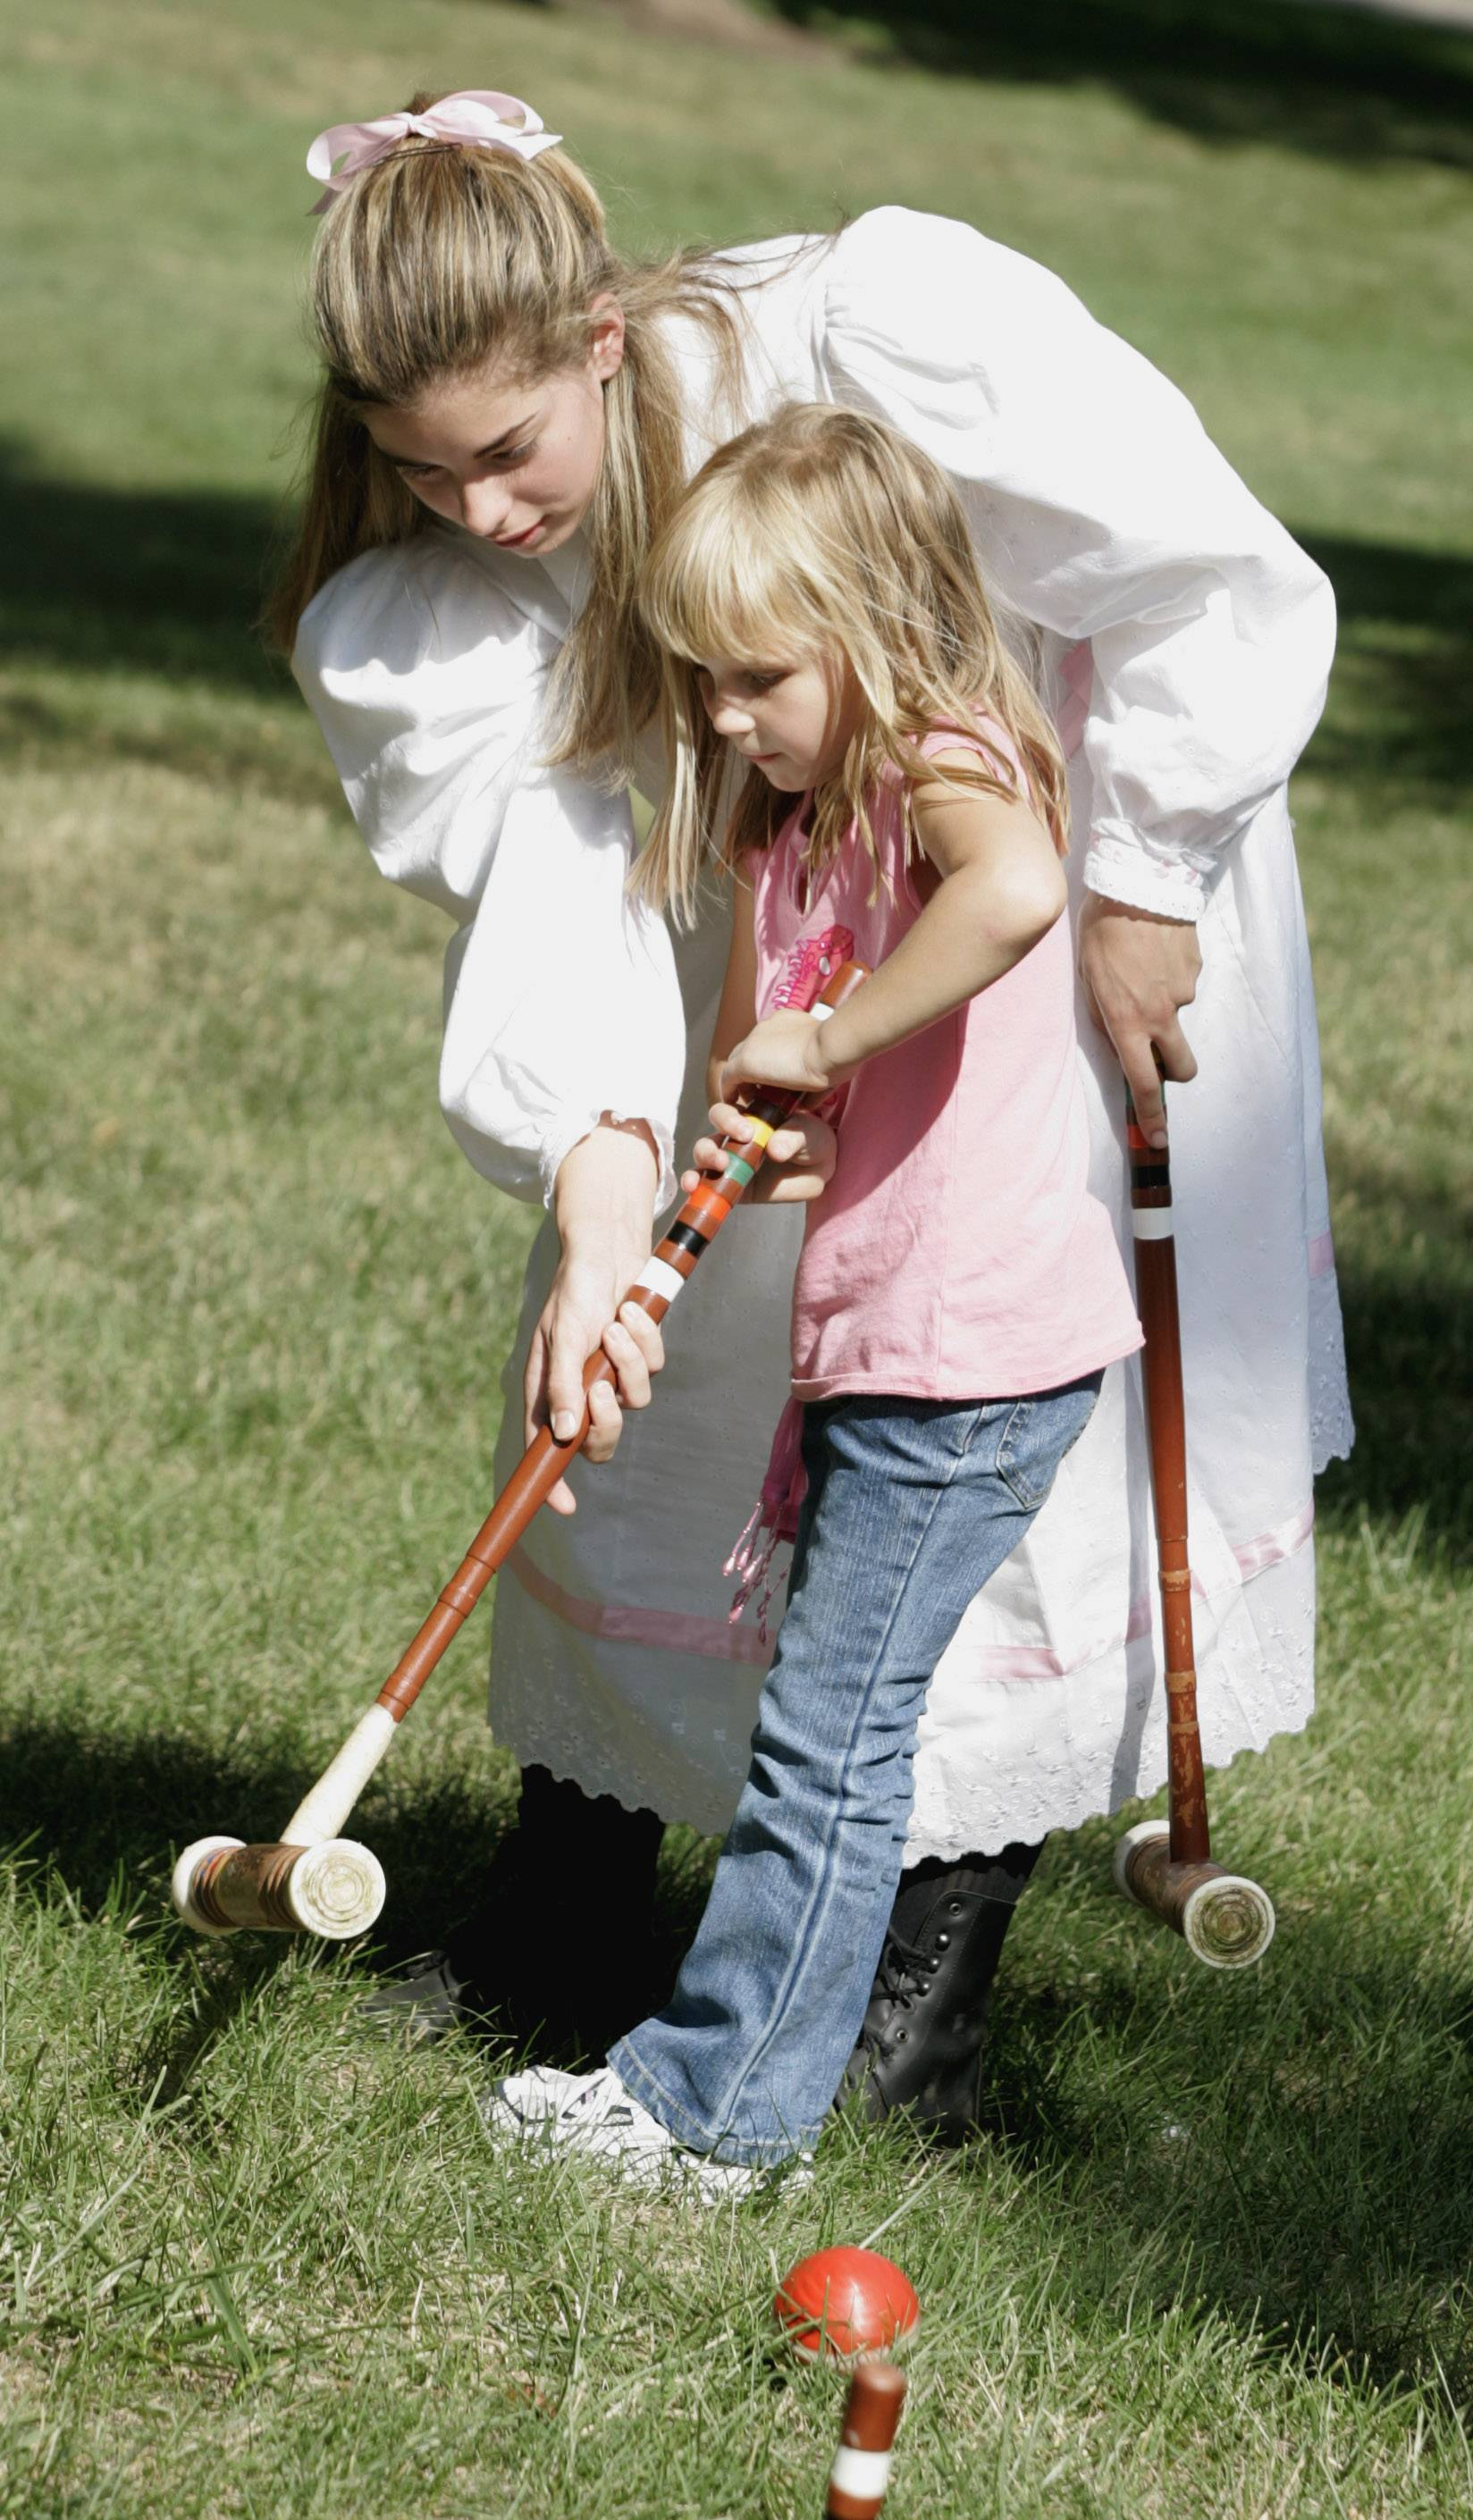 Naperville Plays! offers a variety of activities, including a little Sunday afternoon croquet on the lawn of the Martin Mitchell Mansion at Naper Settlement.